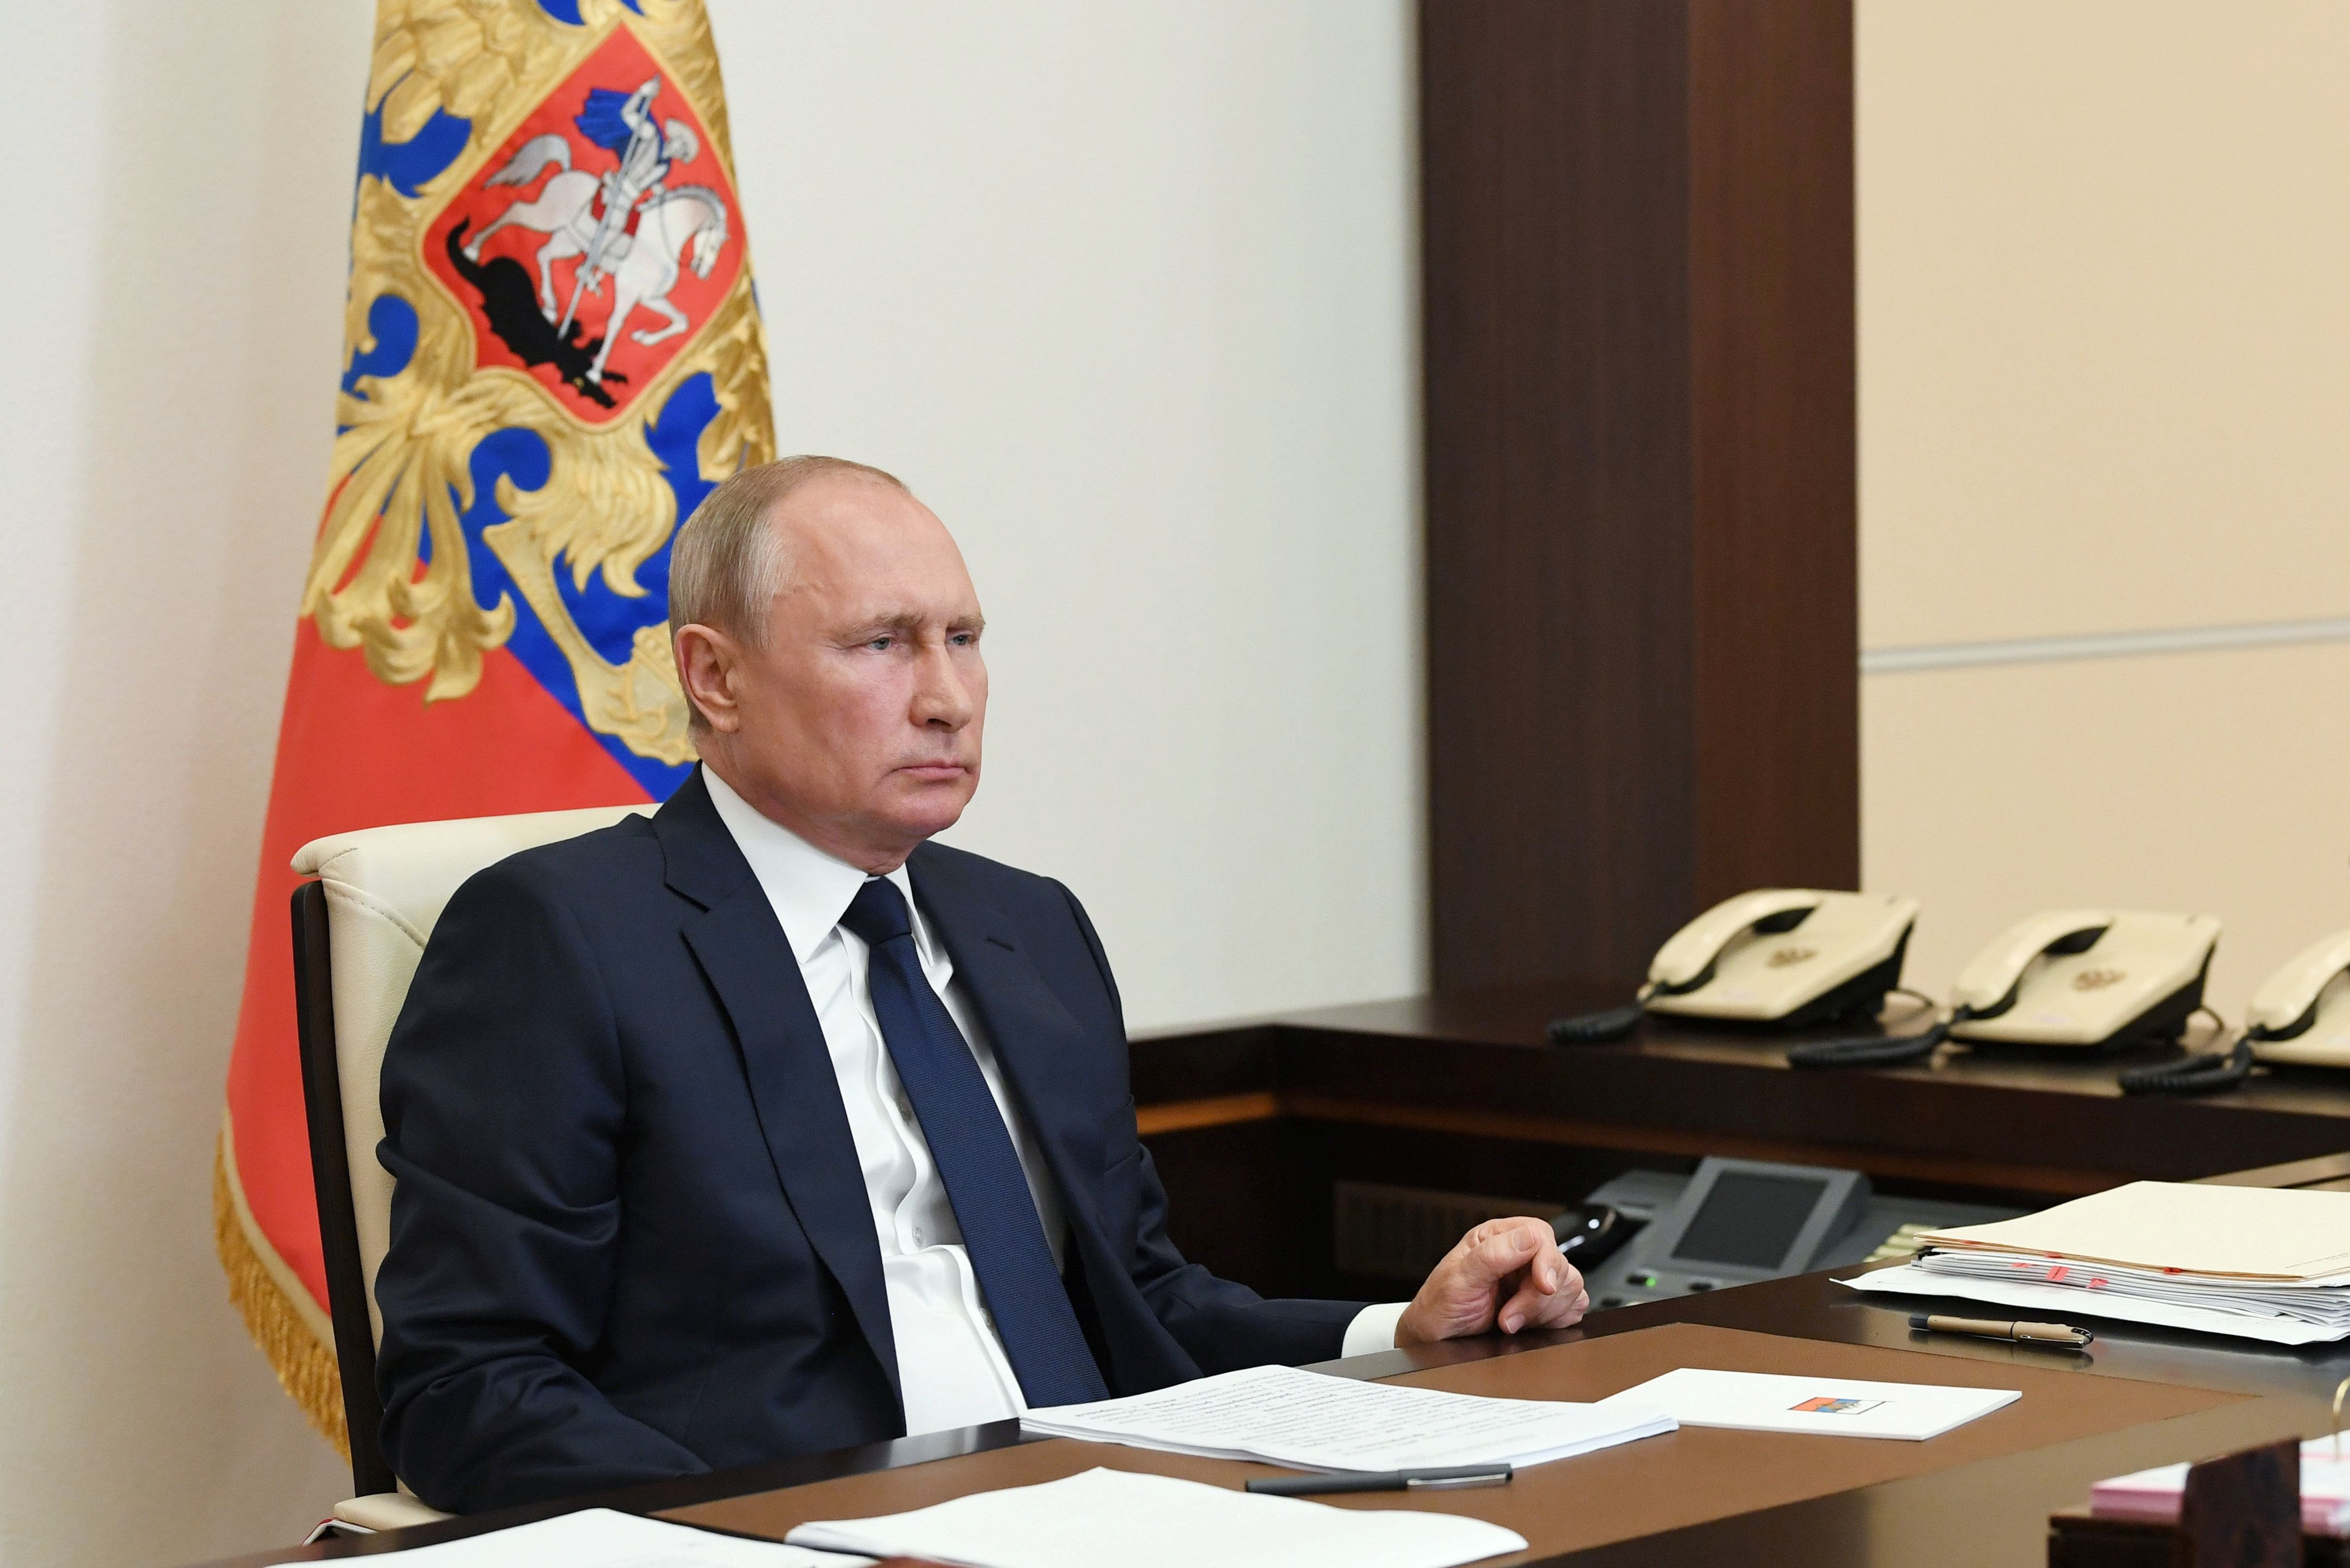 Hard Numbers: Russia's real death toll, jobless American women, Afghan attacks, Seoul tracing challenge